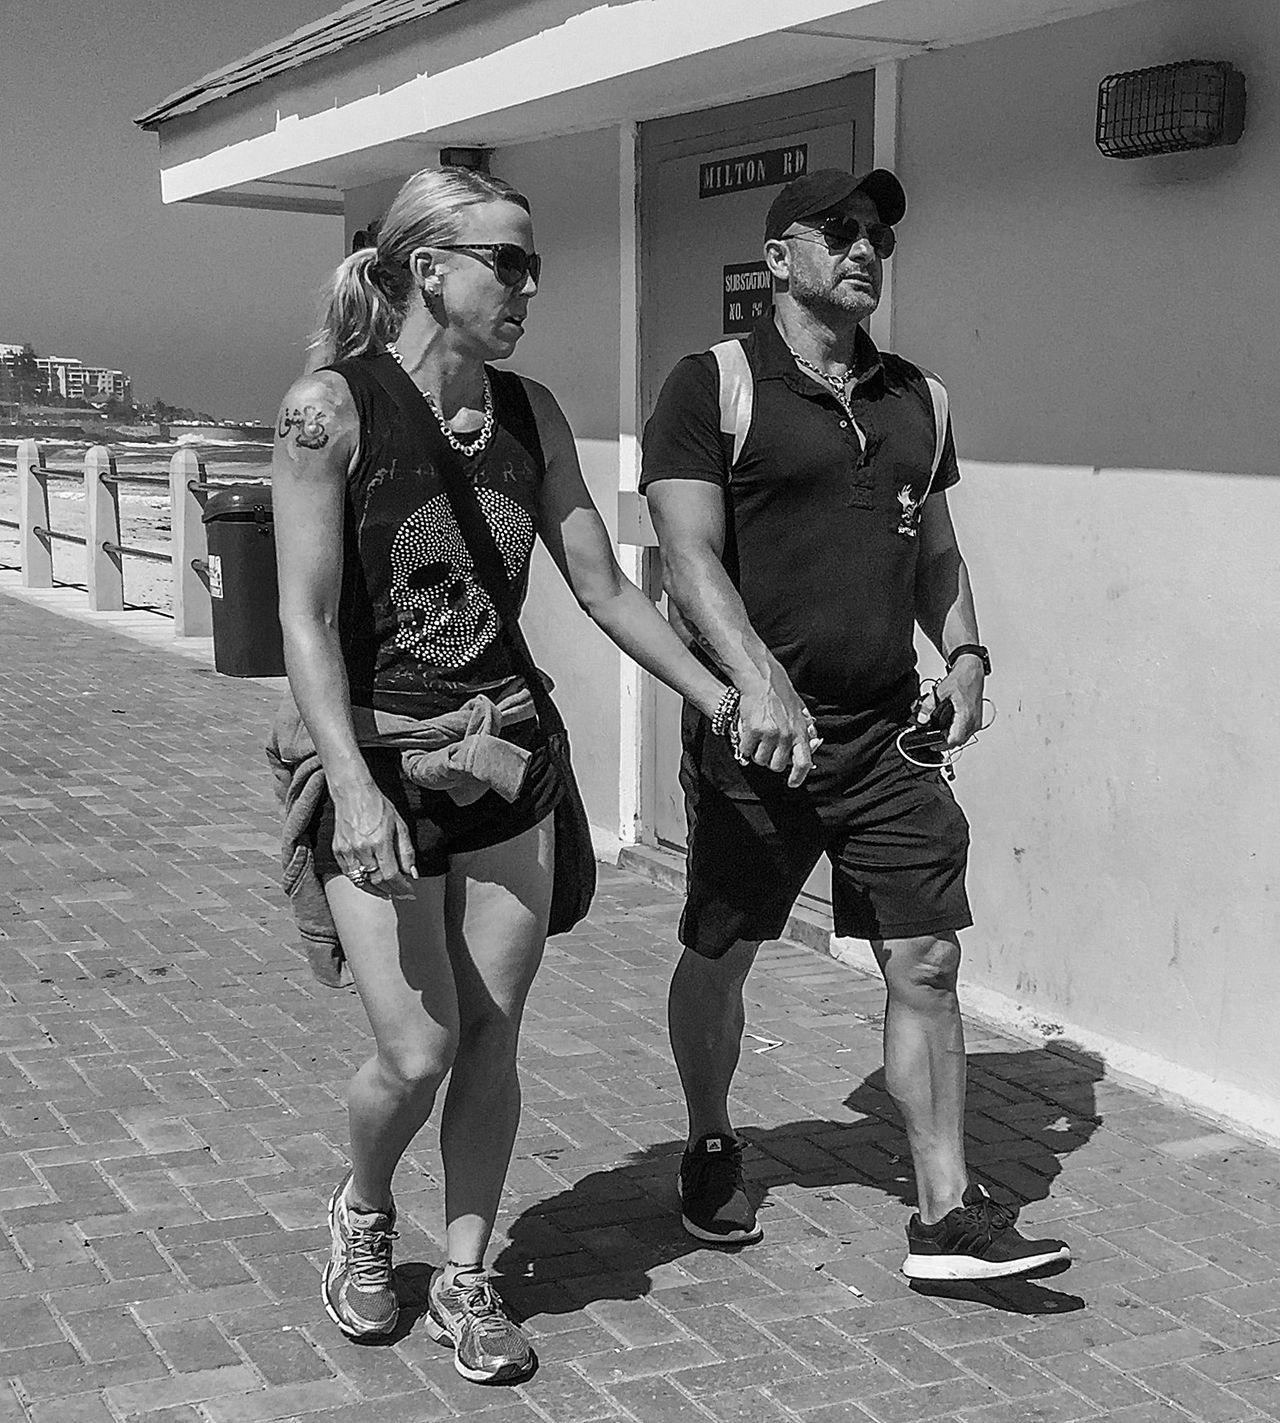 Blackandwhite Candid Candid Photography Couple Front View Full Length Ink Streetphotography Two People Walking